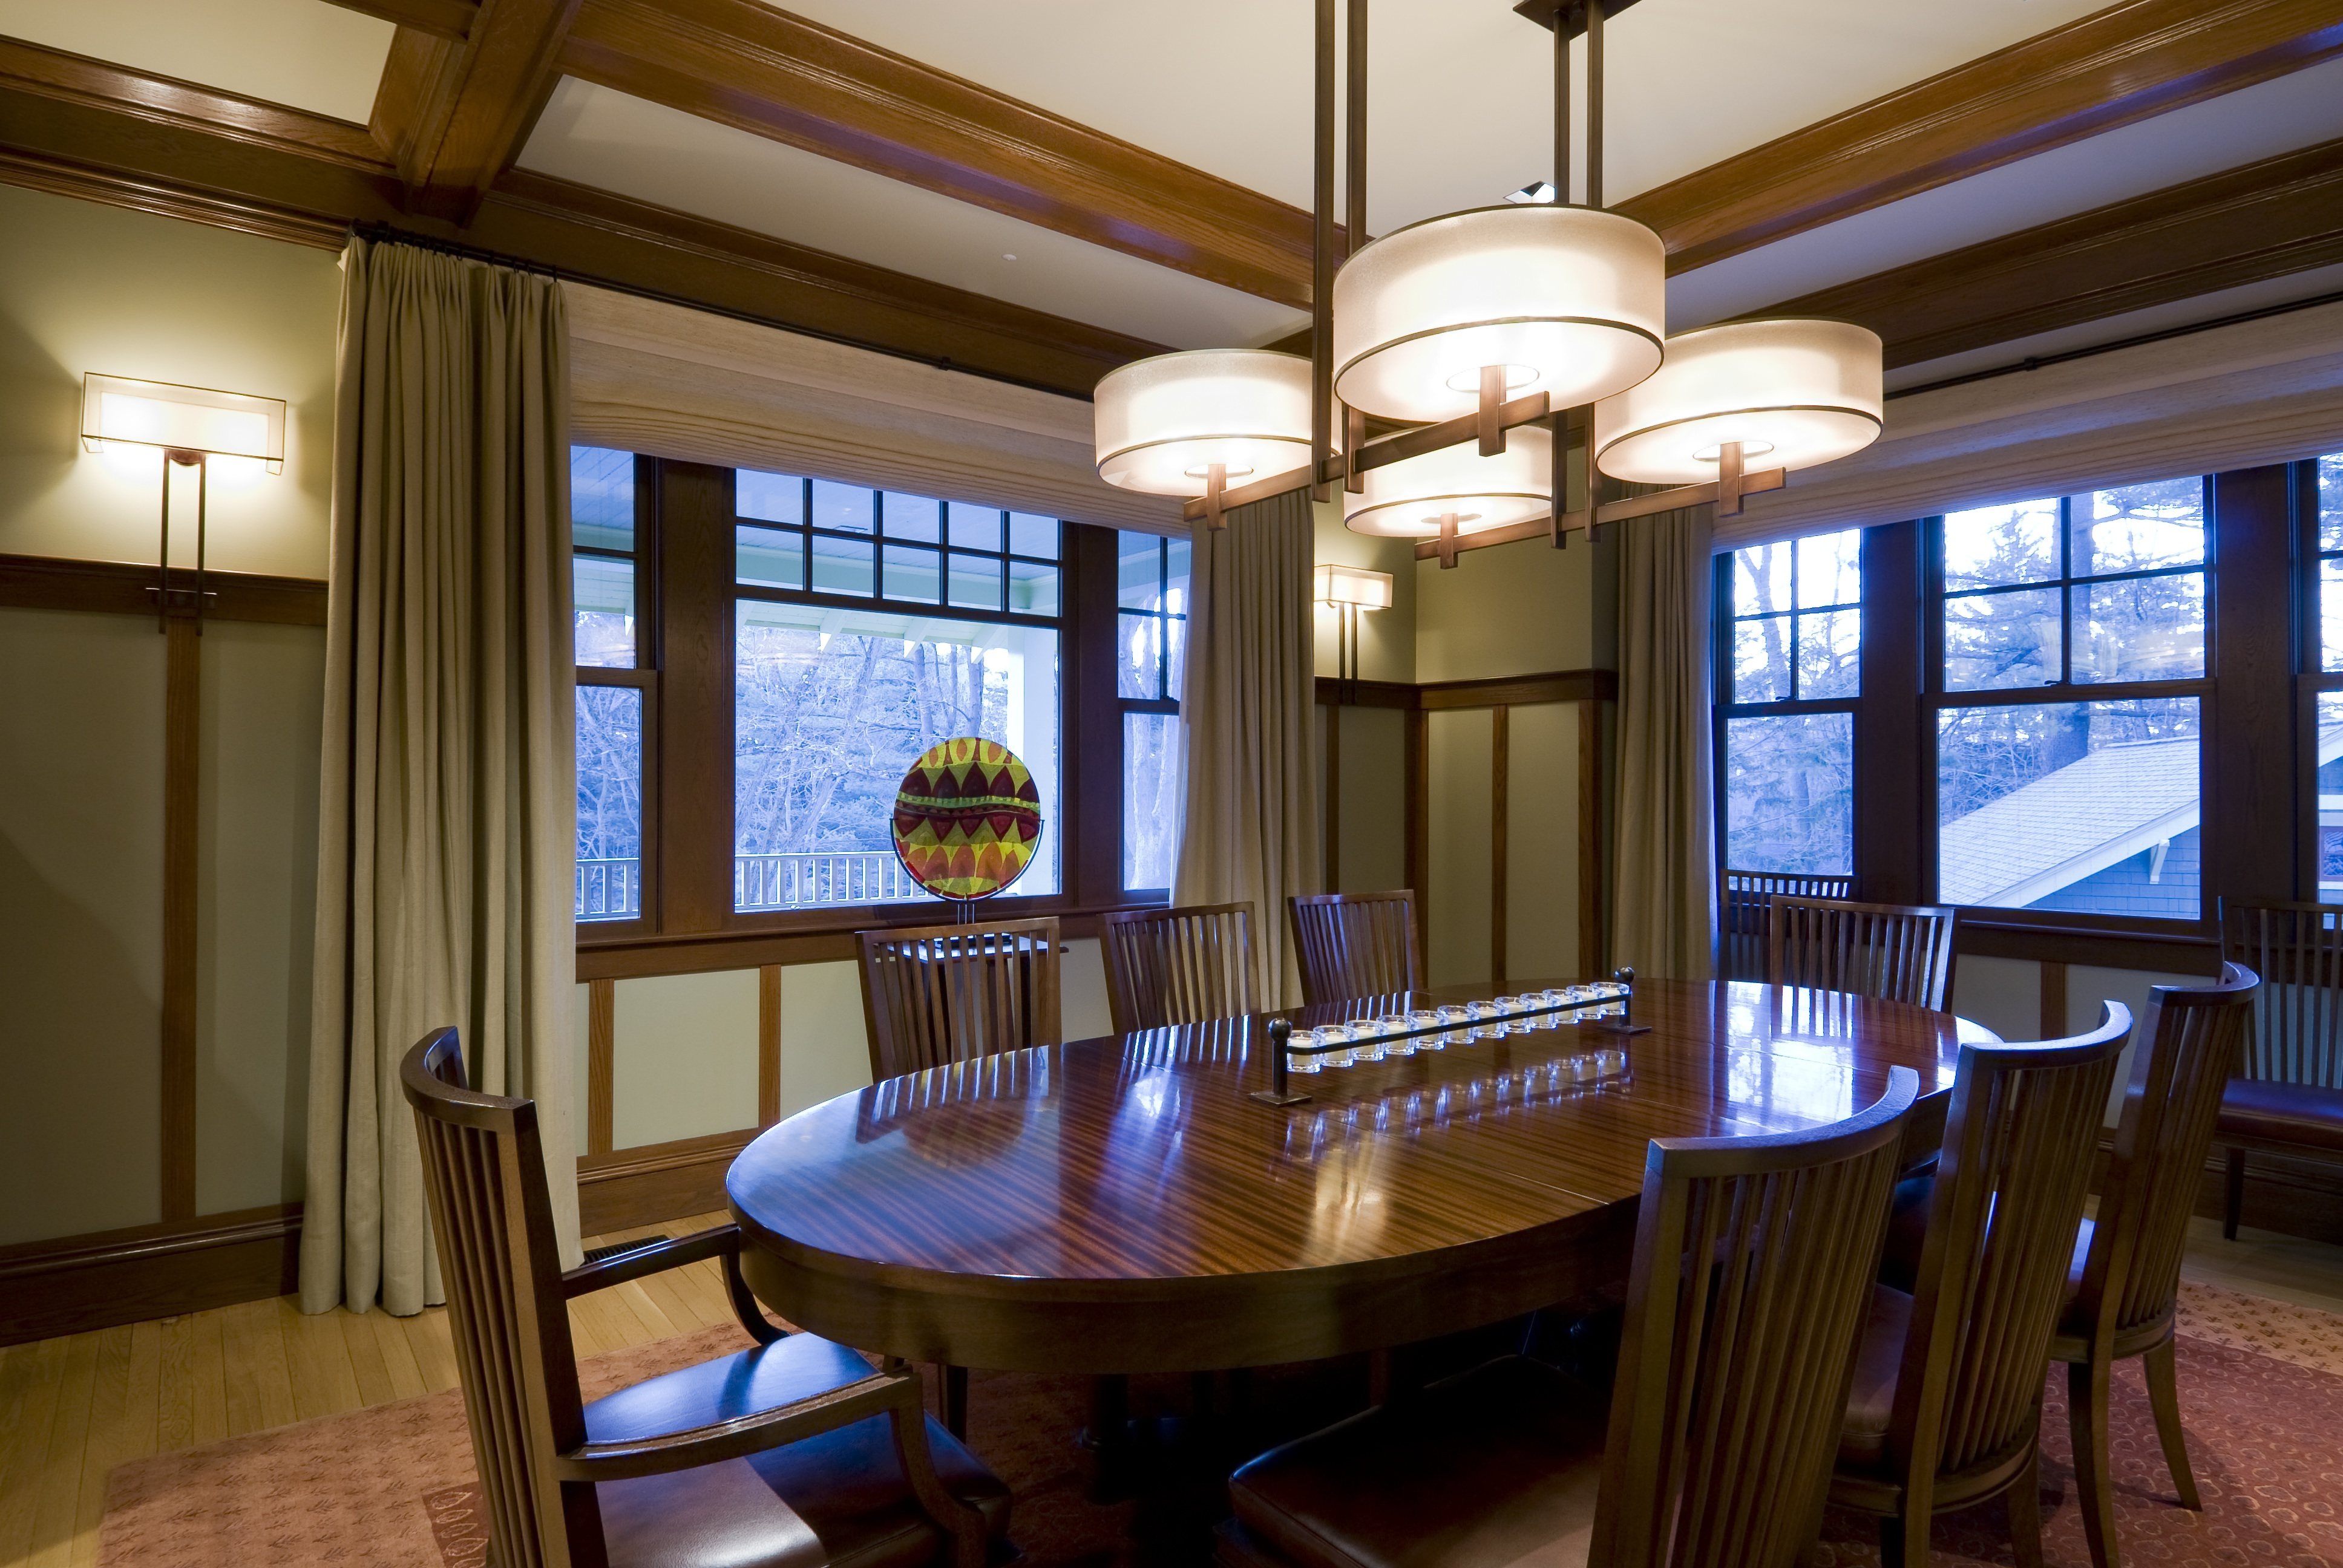 The Craftsman Bungalow Dining Room